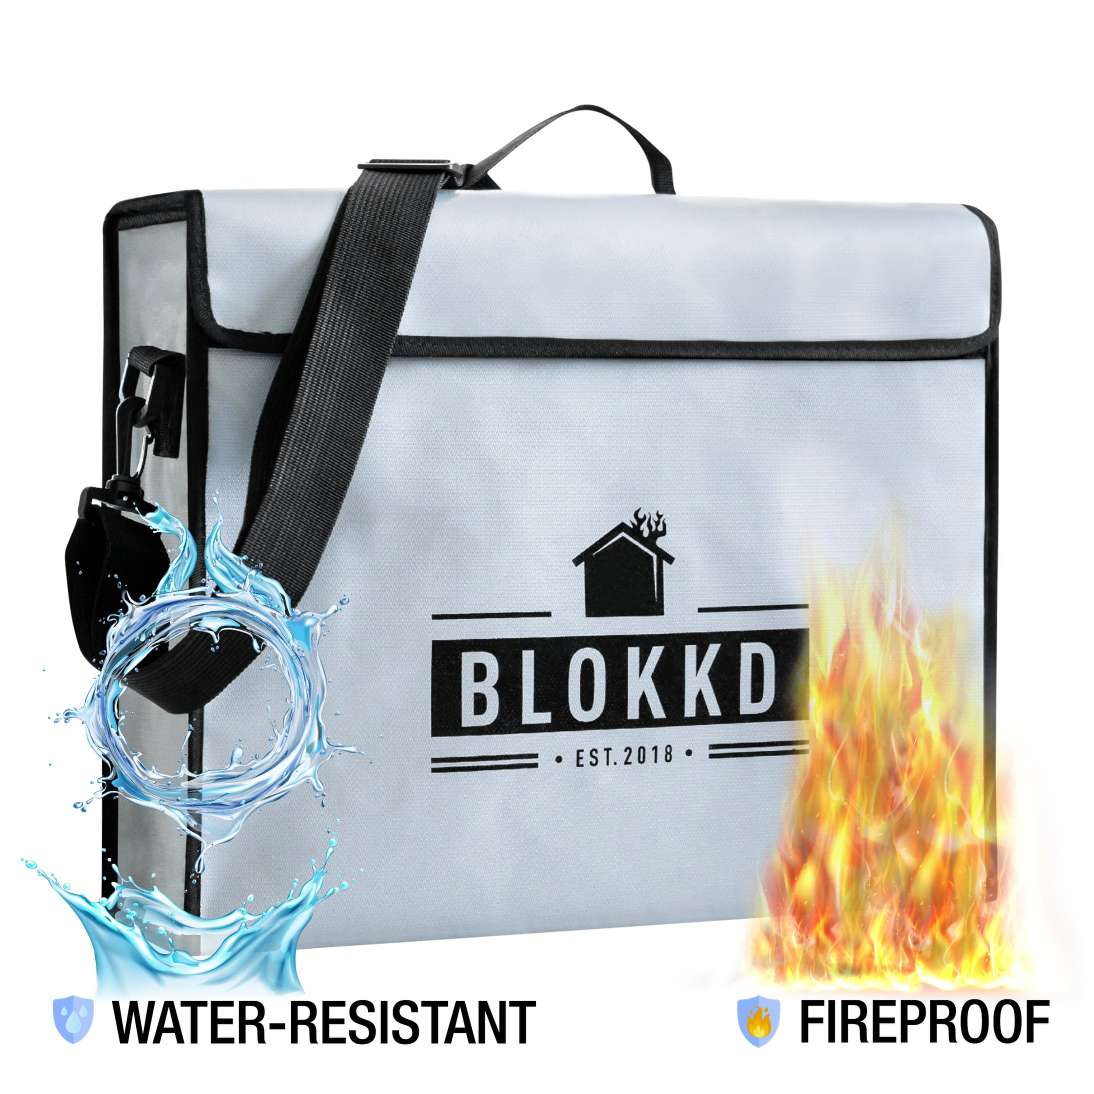 Large Fireproof & Water-Resistant Bag for Documents and Valuables Storage - 13H x 16W x 5D in.